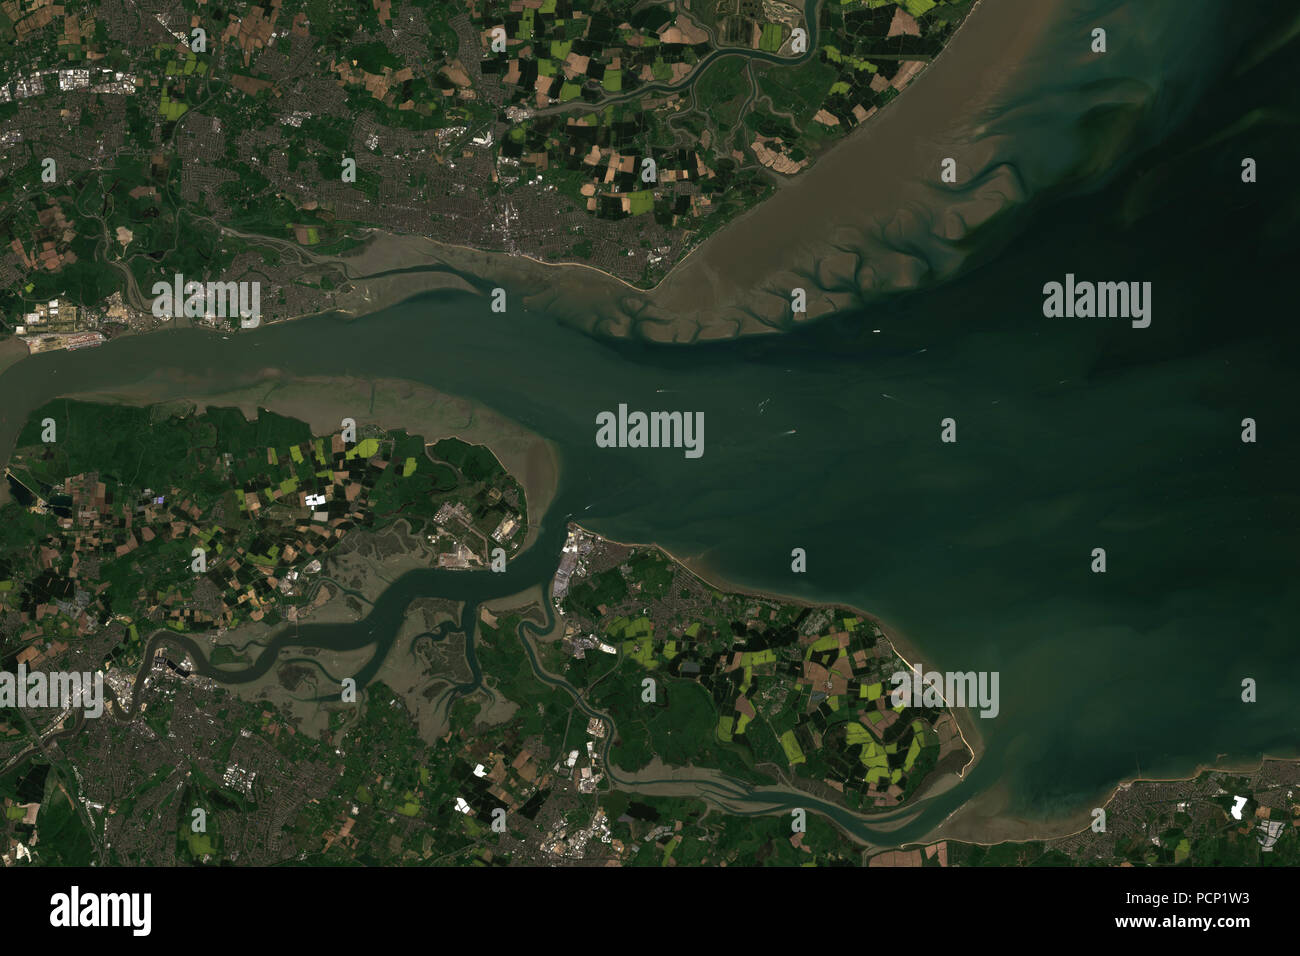 River thames estuary in Great Britain seen from space - contains modified Copernicus Sentinel data Stock Photo